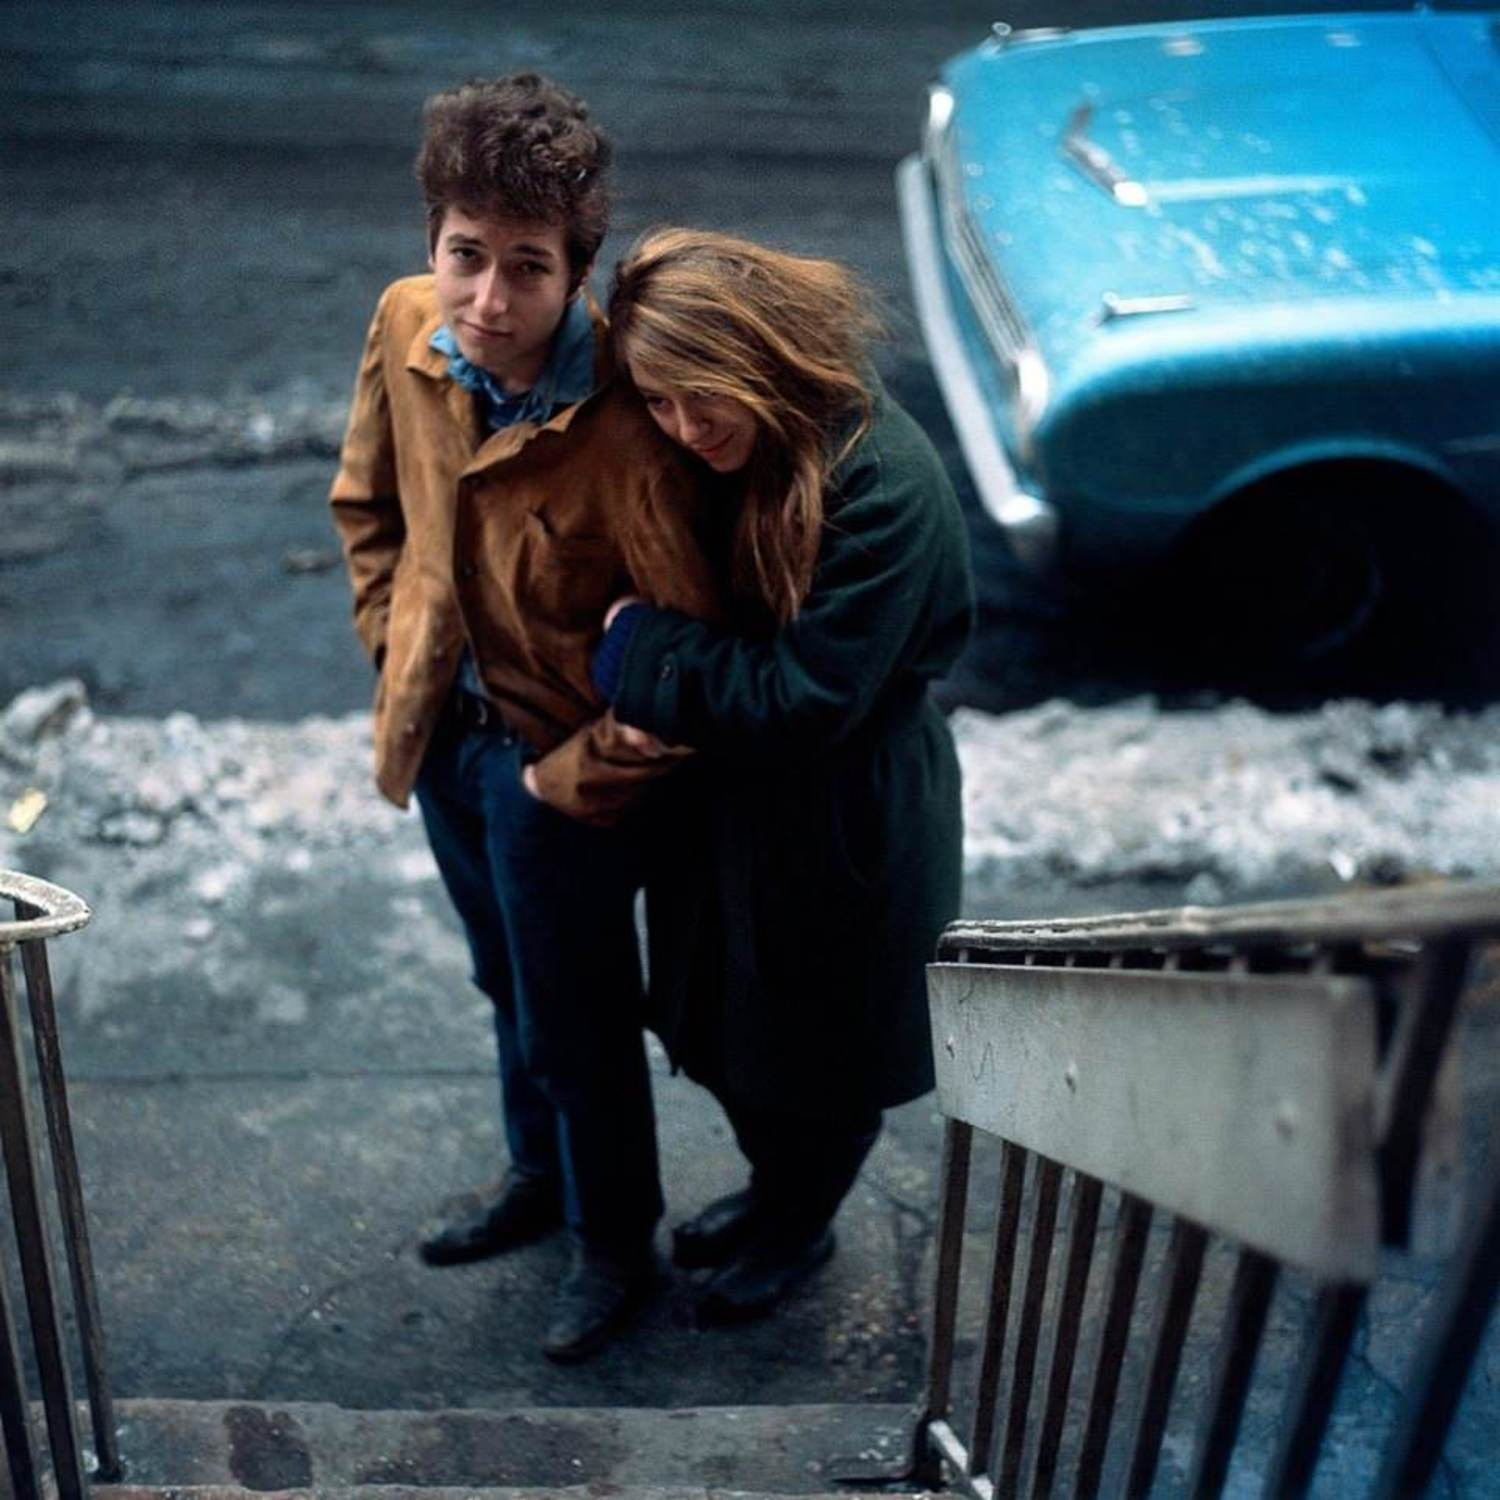 Bob Dylan and Suze Rotolo, West Village, New York City (1963)